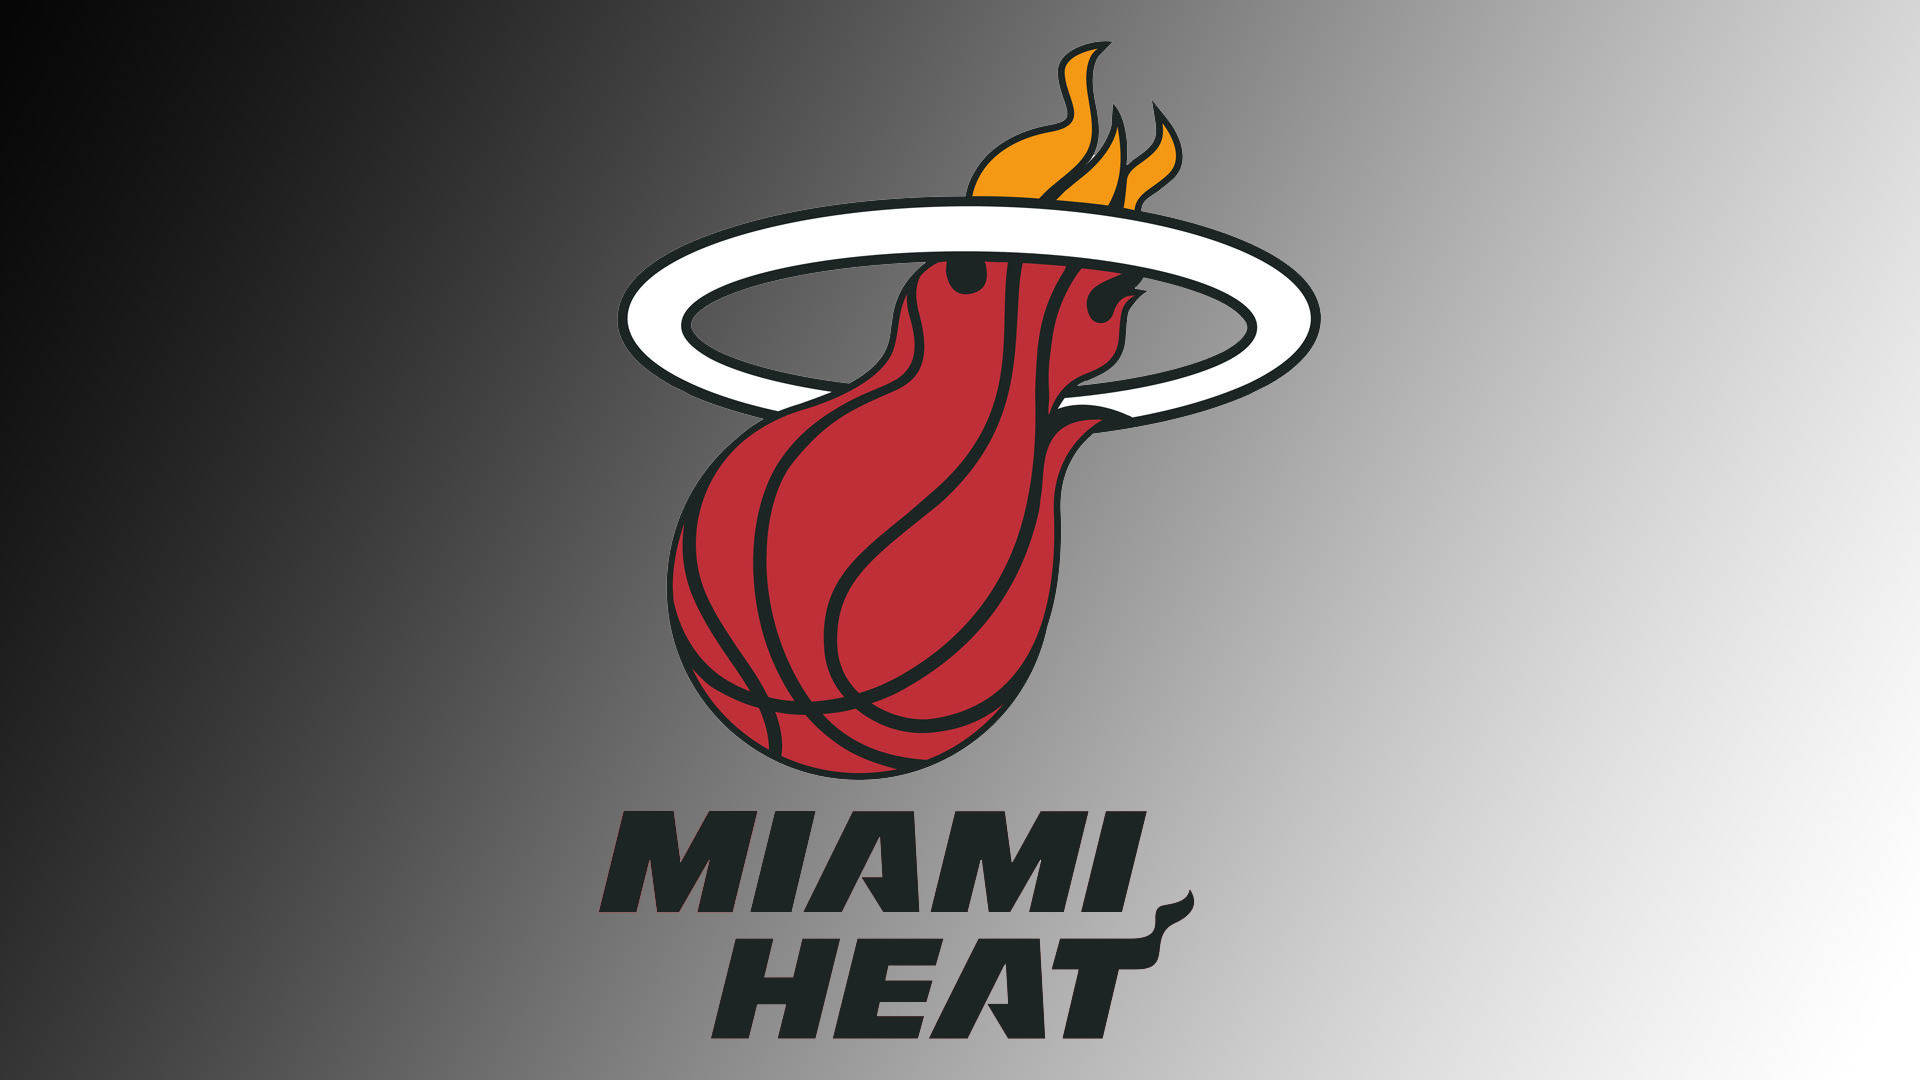 Miami Heat Wallpaper HD collection 1920x1080